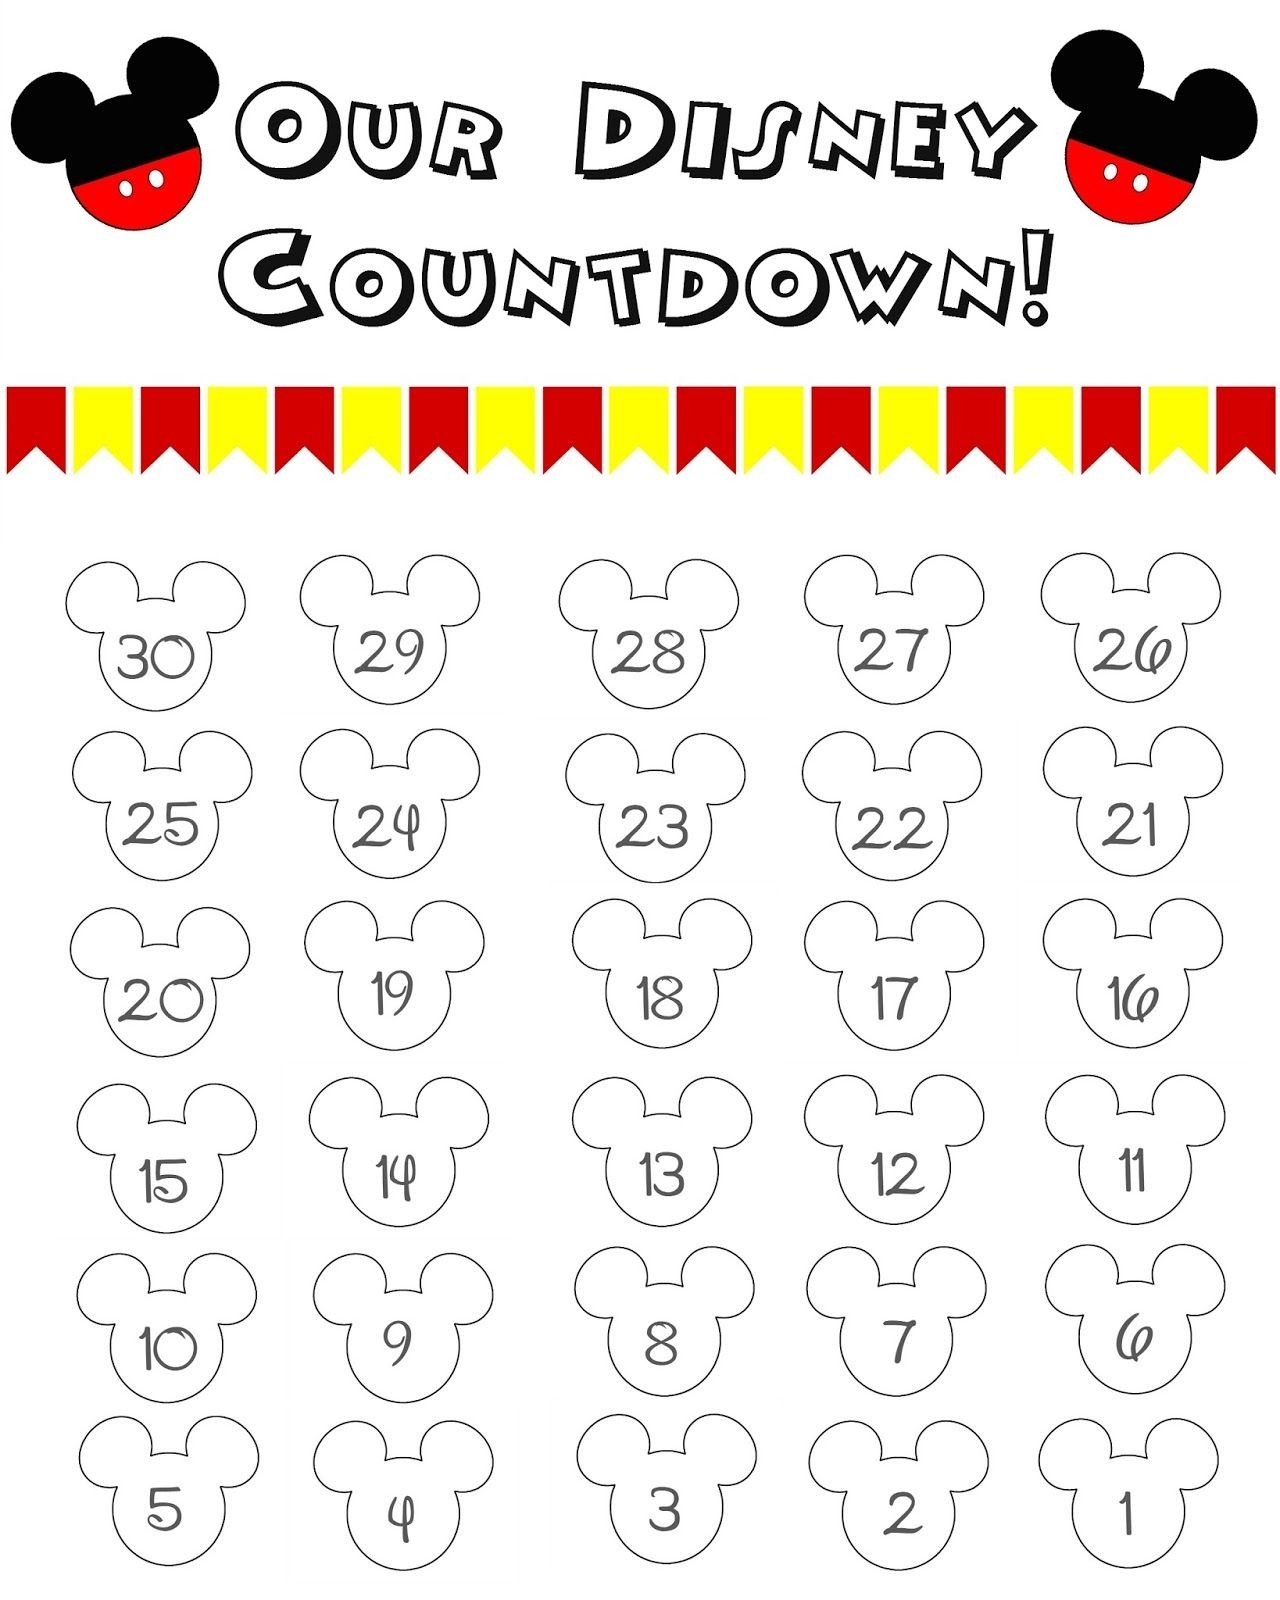 Disney World Countdown Calendar - Free Printable!! | Disney-Blank Calendar Template Countdown